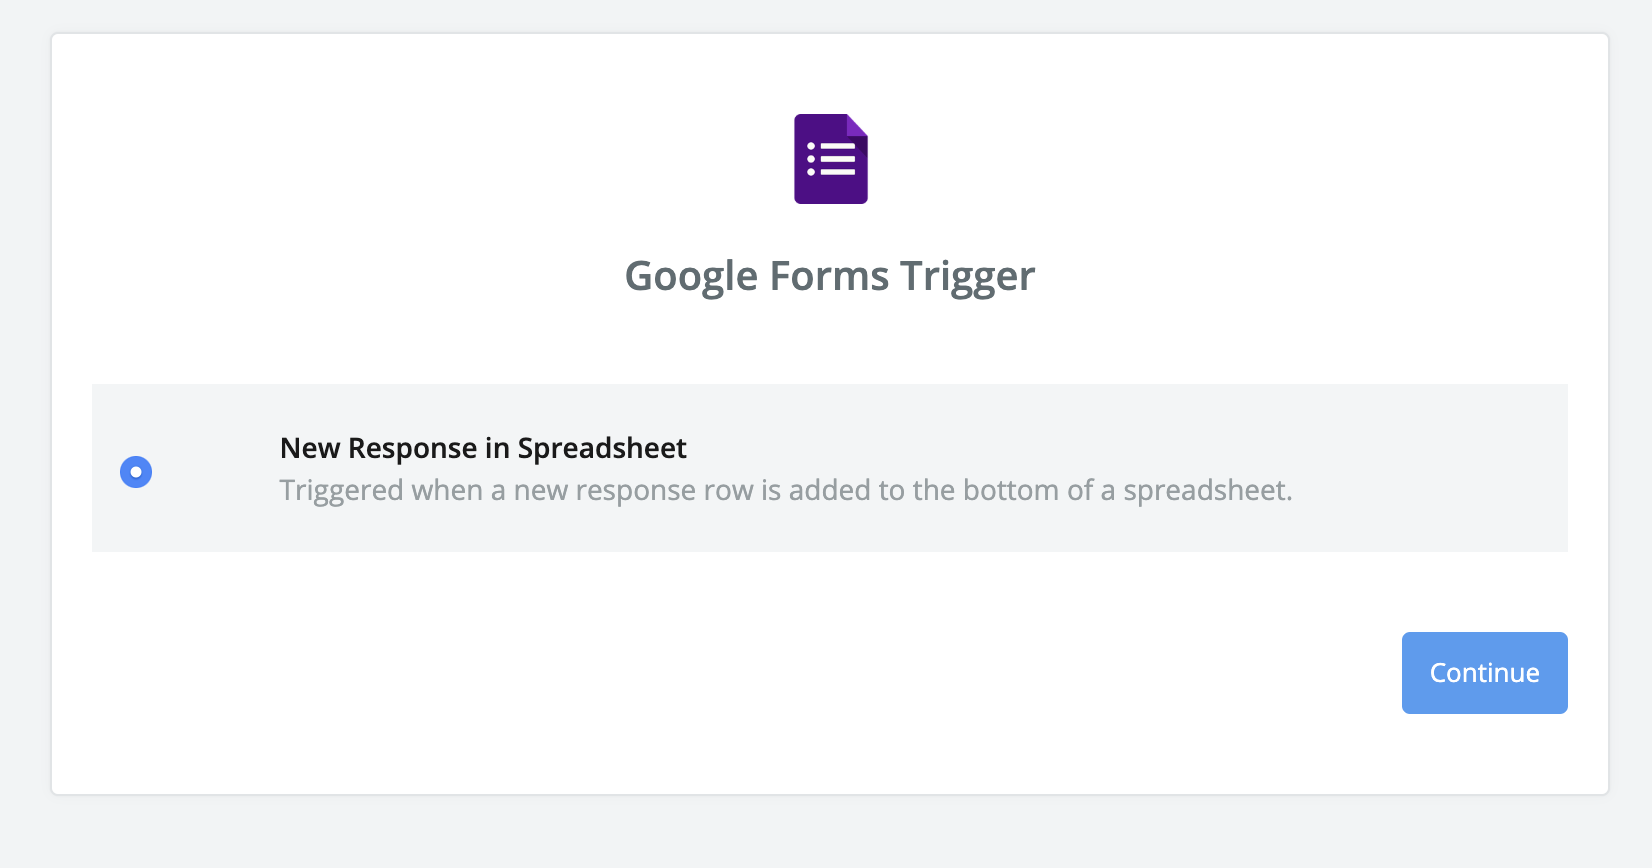 The New Response trigger in Google Sheets